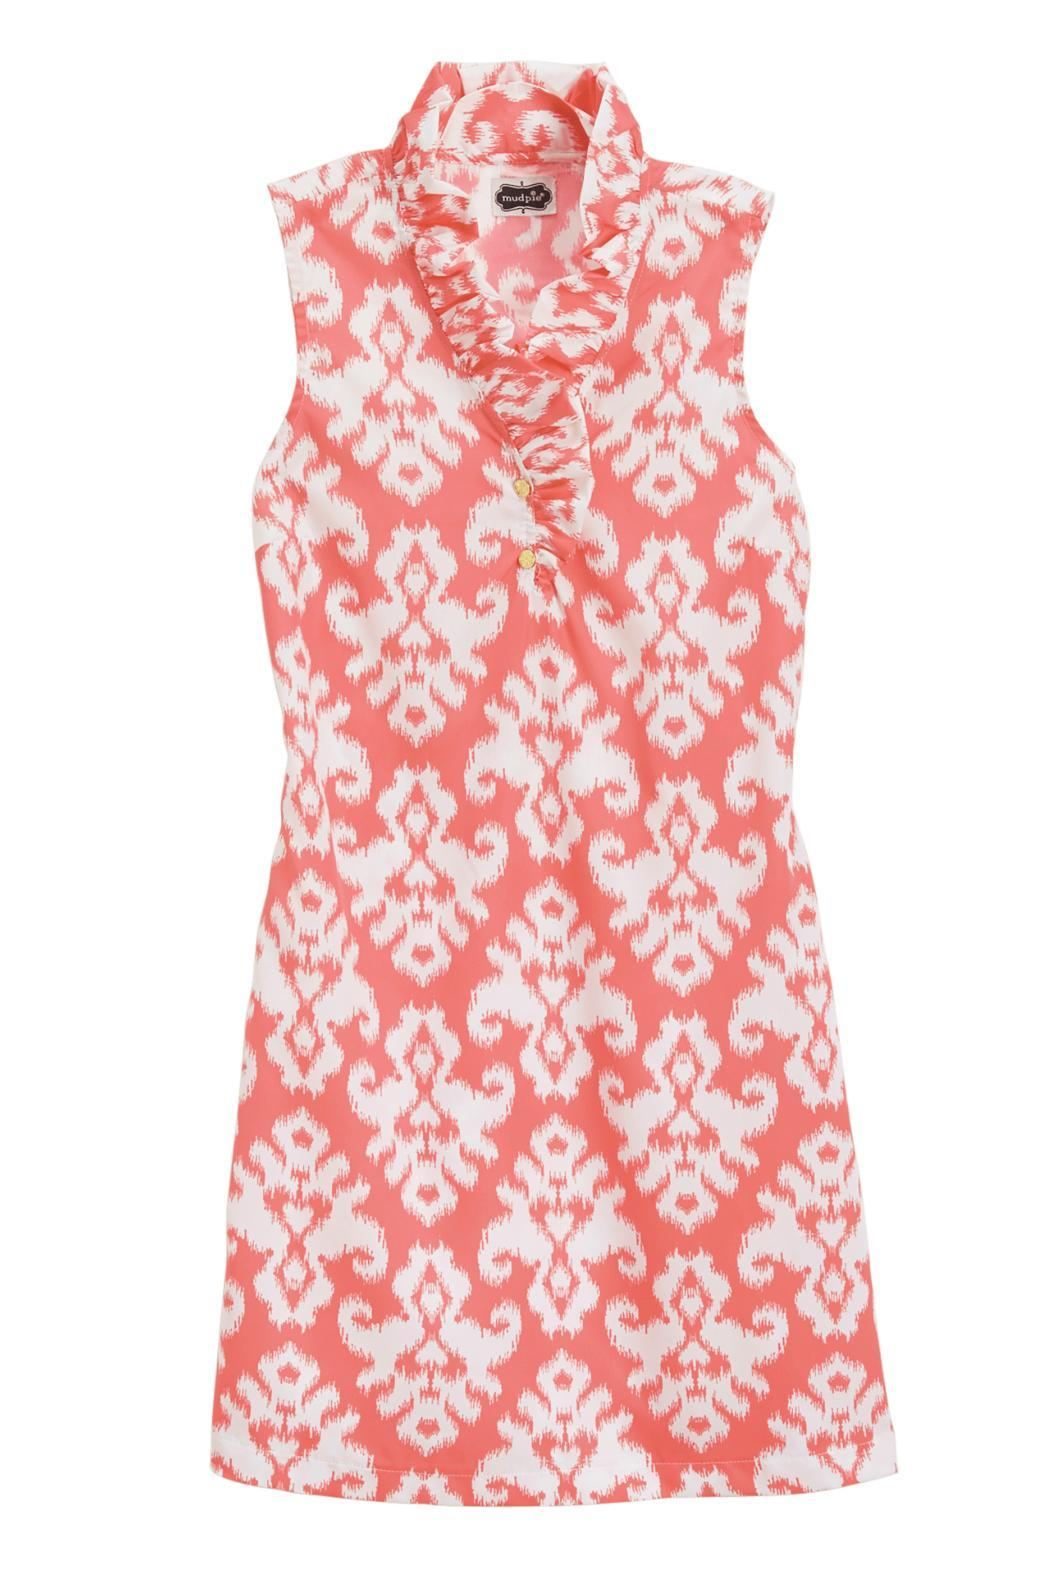 Mud pie sherbet ikat dress from syracuse by white sleigh for Ikat fabric dress